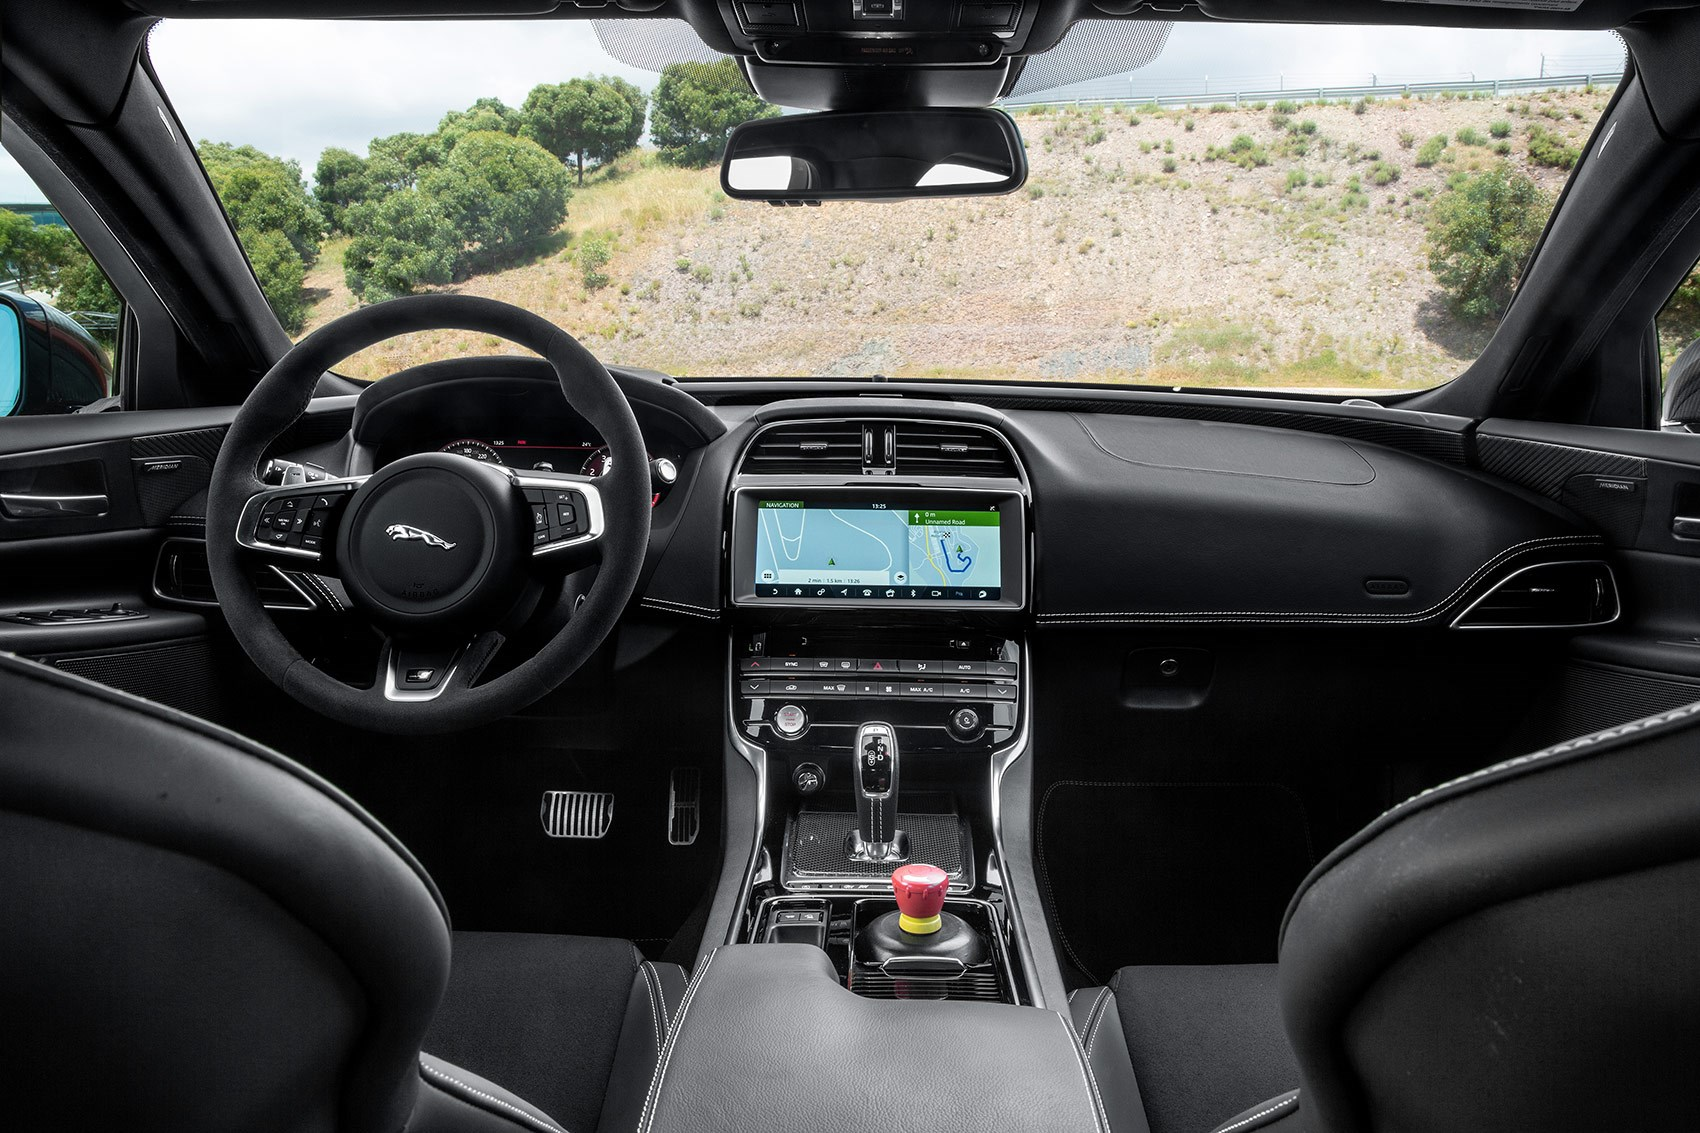 Jaguar XE SV Project 8 interior and cabin